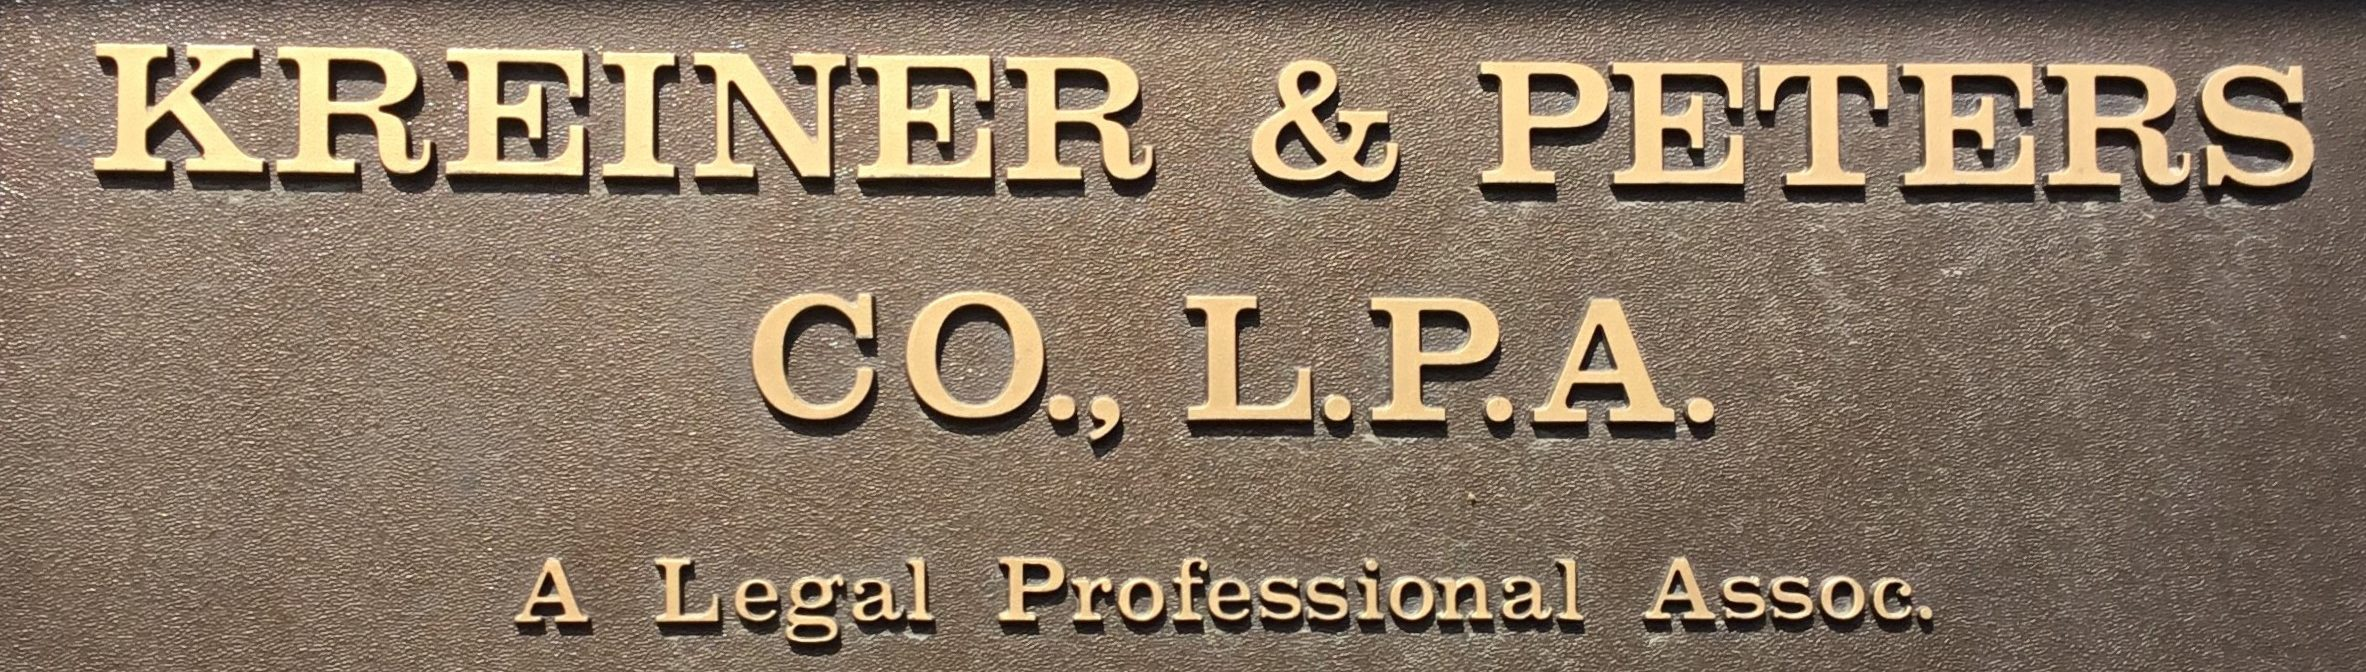 Subrogation & Recovery Professionals